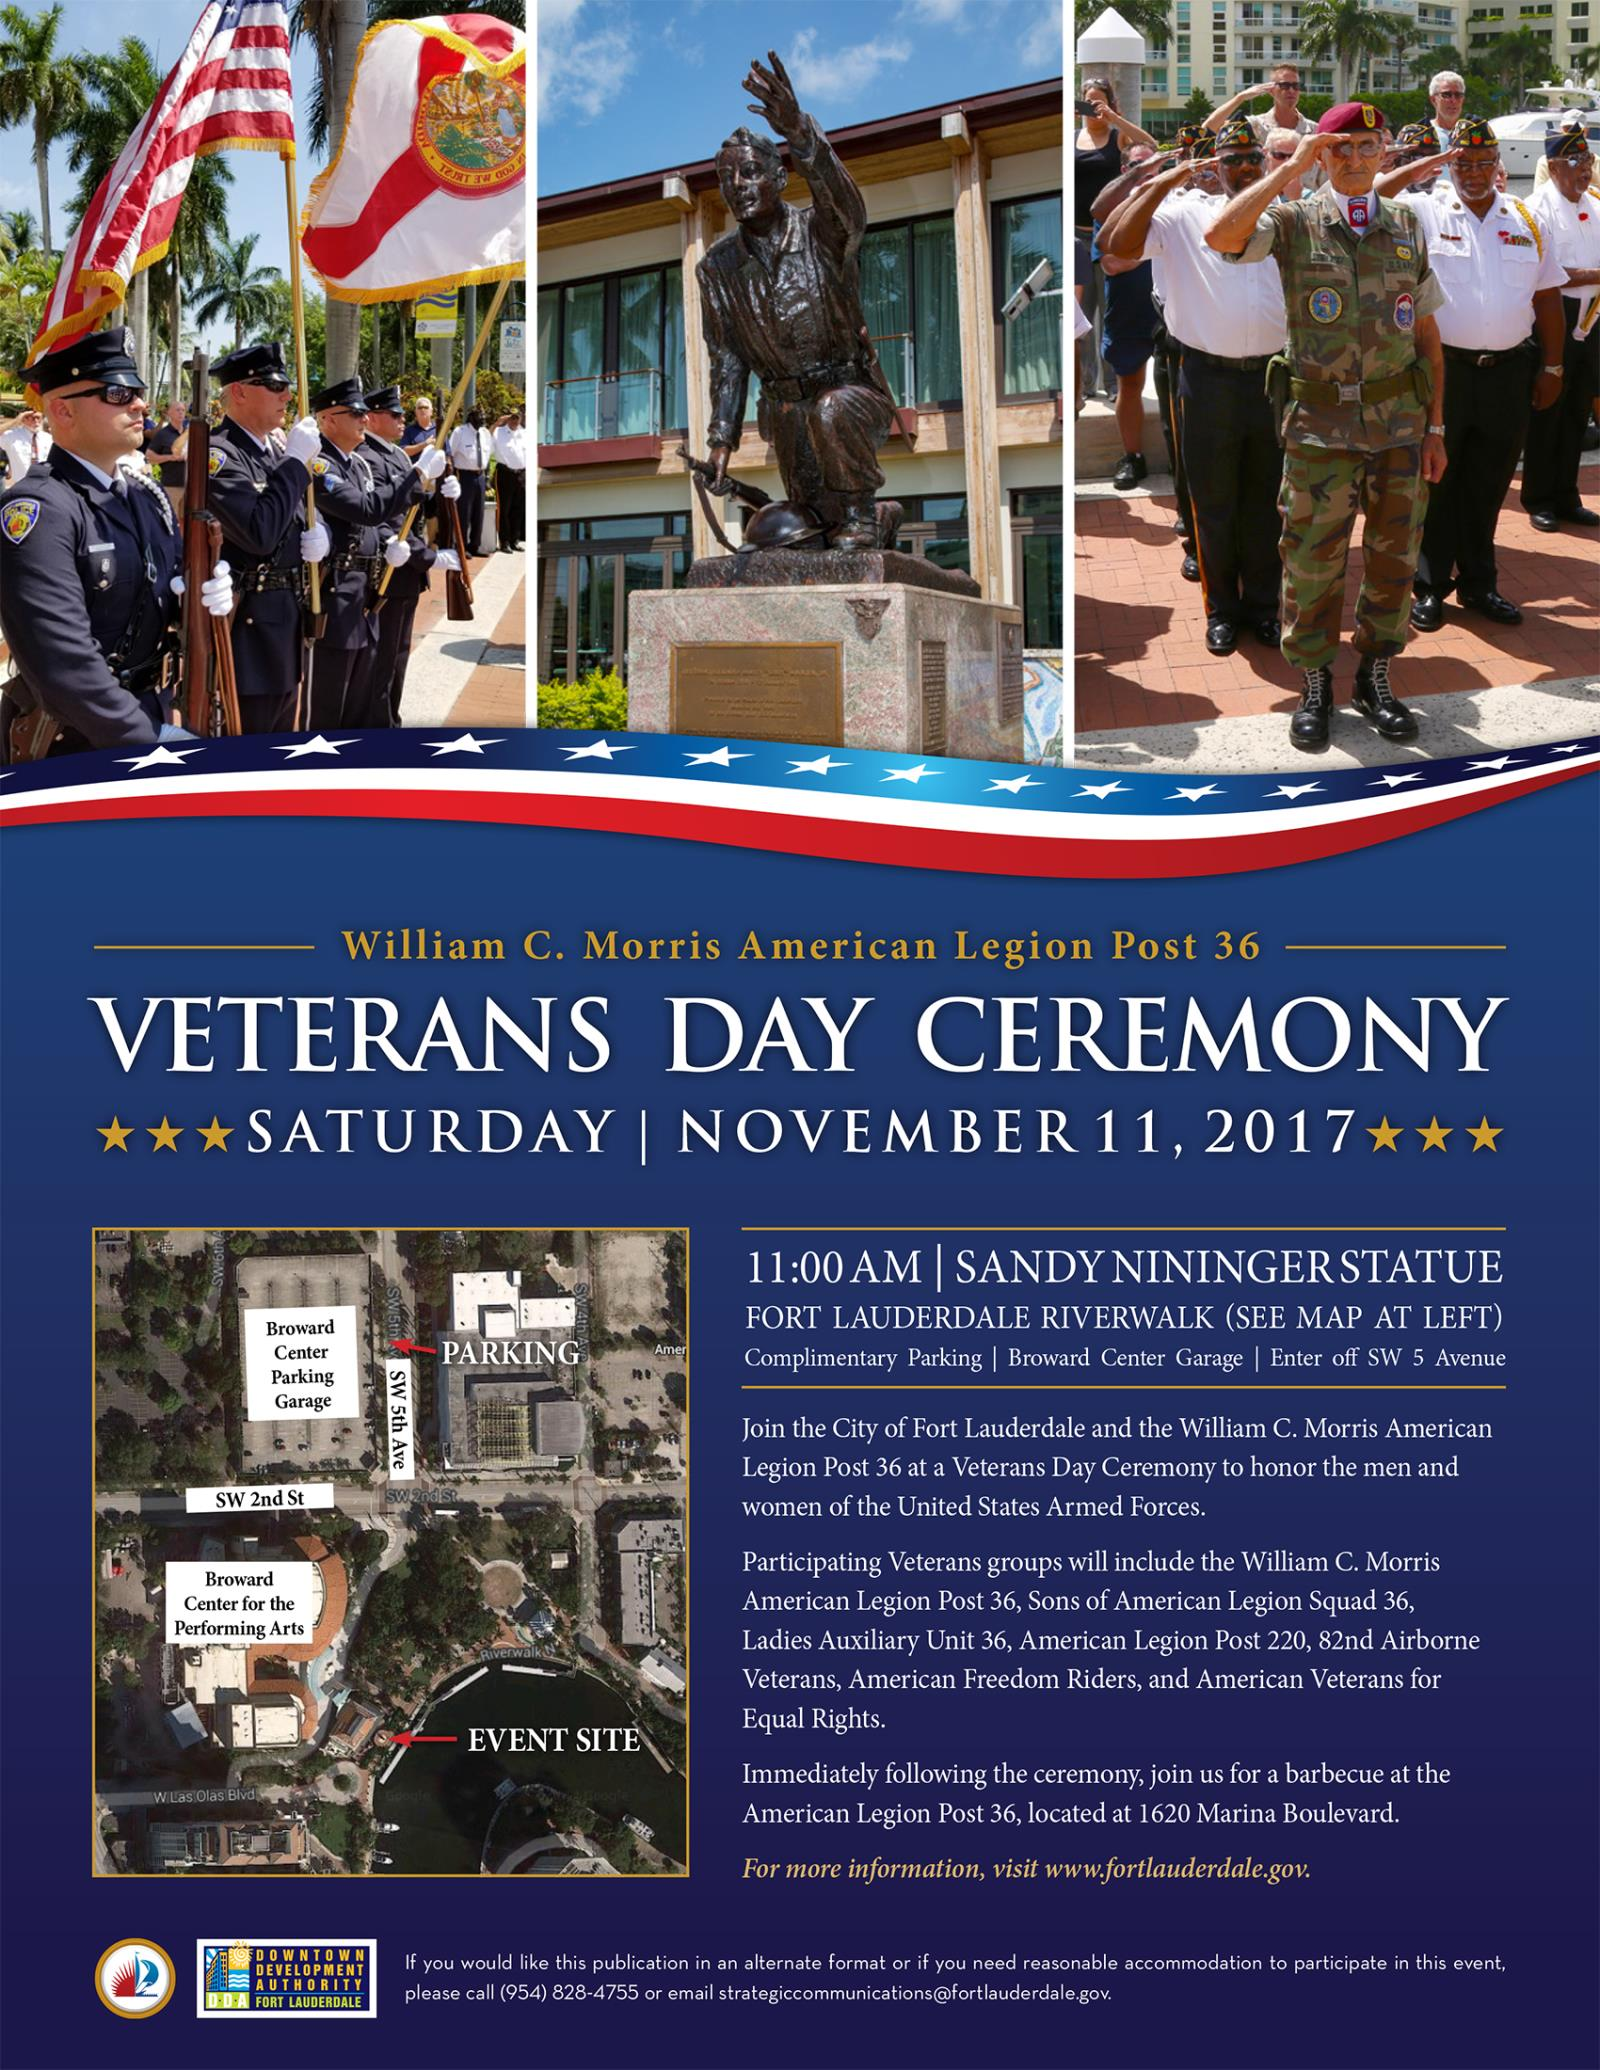 001 Veterans Day Ceremony 11-11-17